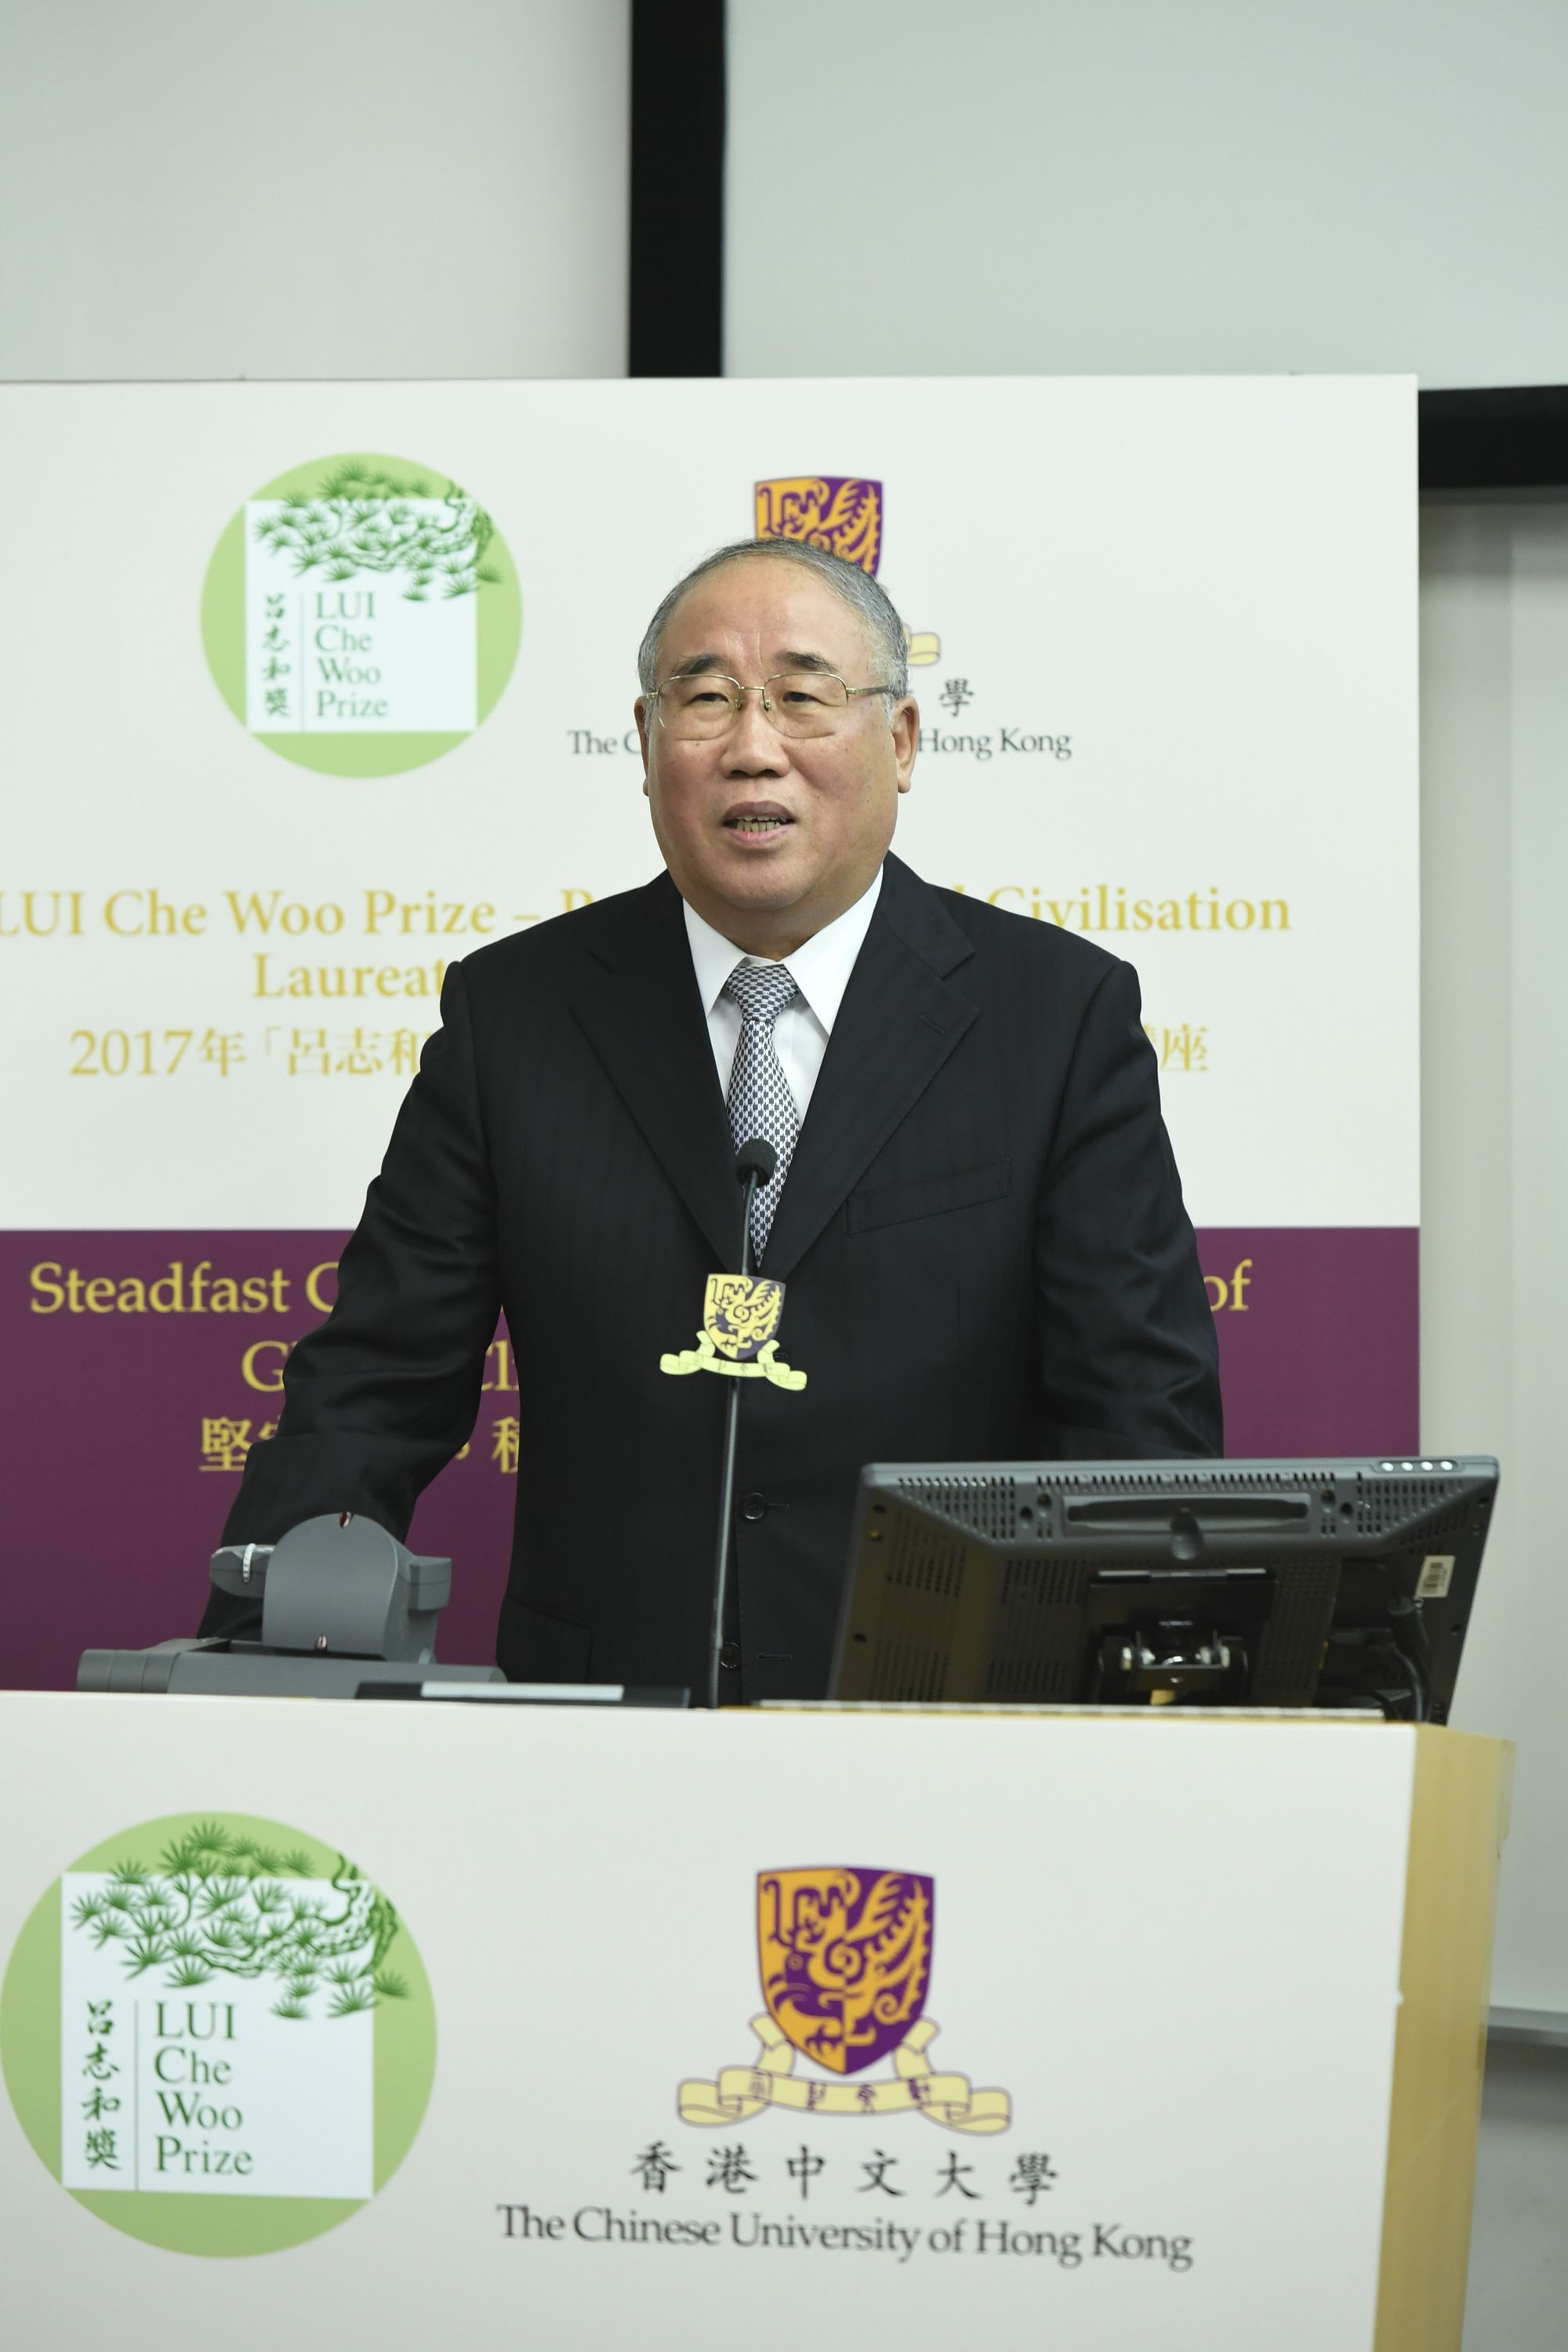 Mr Xie Zhenhua, the Sustainability Prize Laureate of LUI Che Woo Prize – Prize for World Civilisation 2017, delivered a lecture to the public audience.